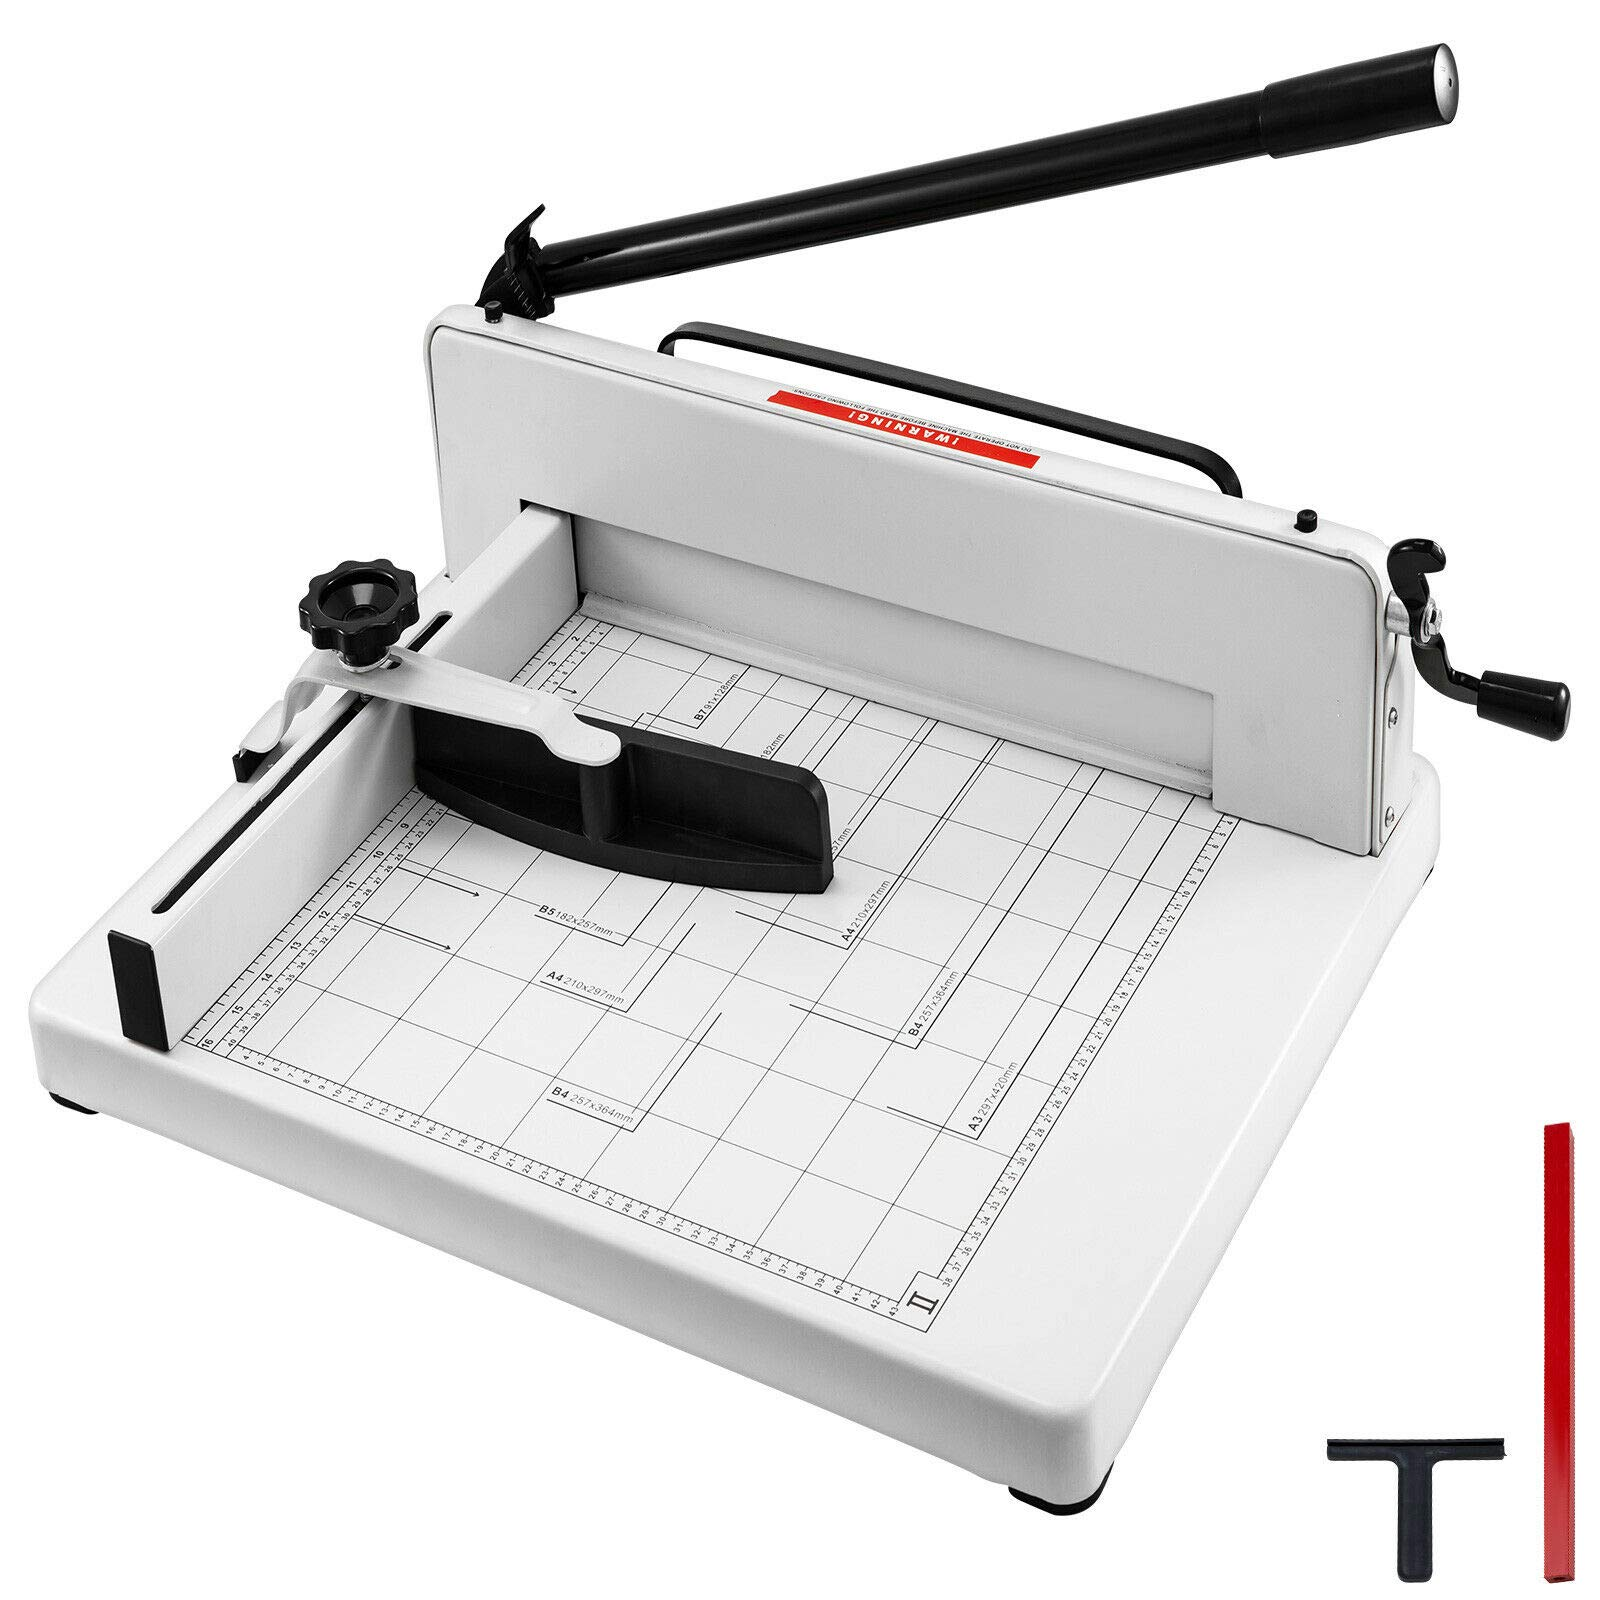 Mophorn Paper Cutter 12Inch A4 Industrial Heavy Duty Guillotine Trimmer 600 Sheets Paper Trimmer Metal Base Stack Cutter for Office Commercial Photocopy Printing Shop (A4, 12Inch) by Mophorn